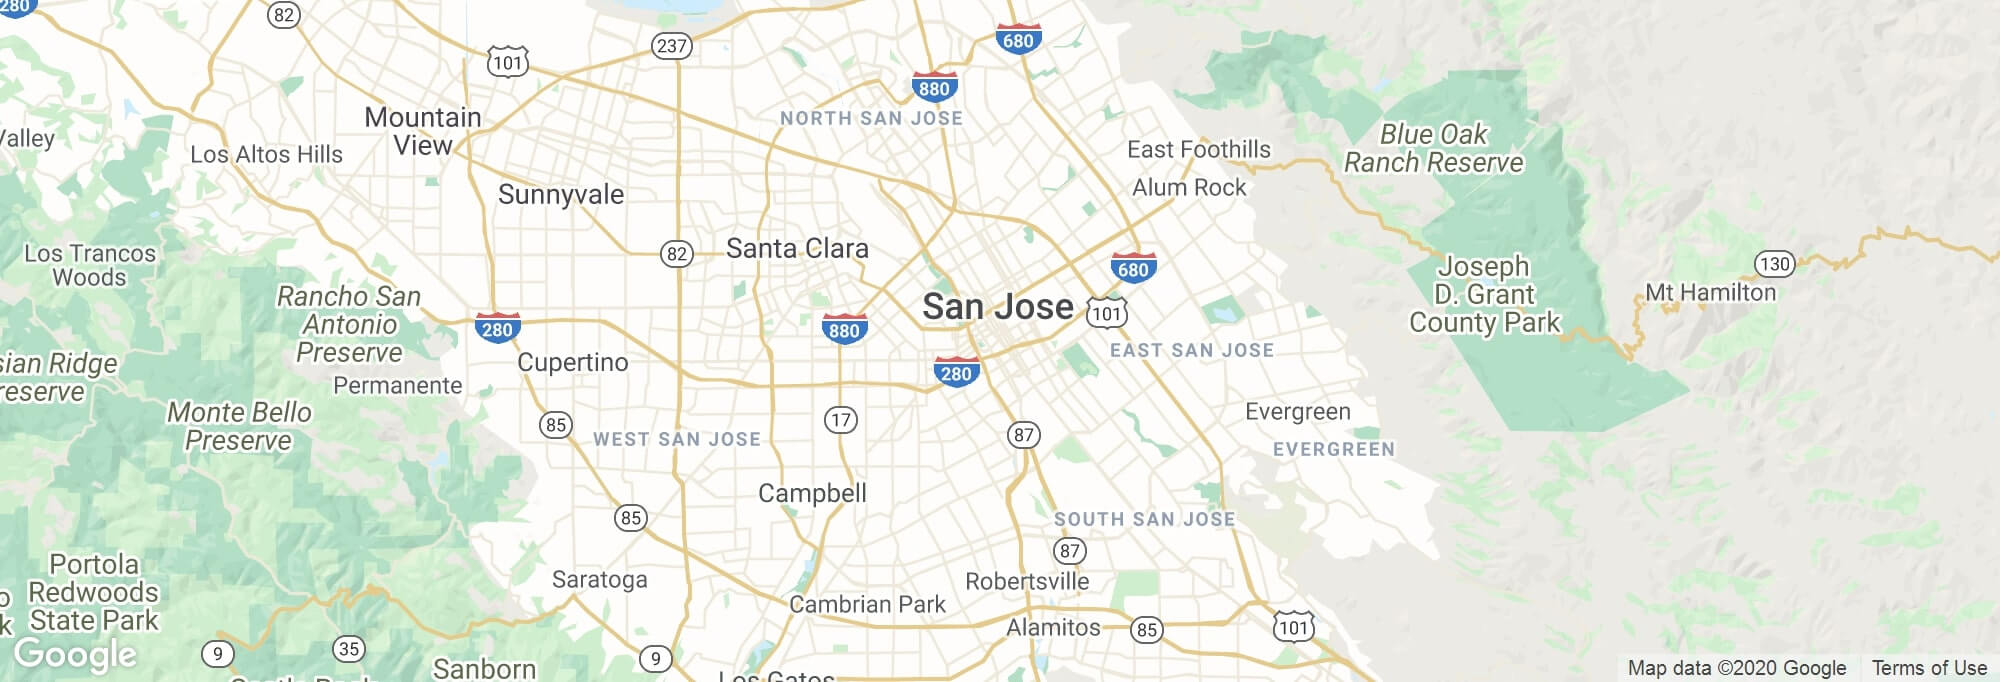 San Jose city map